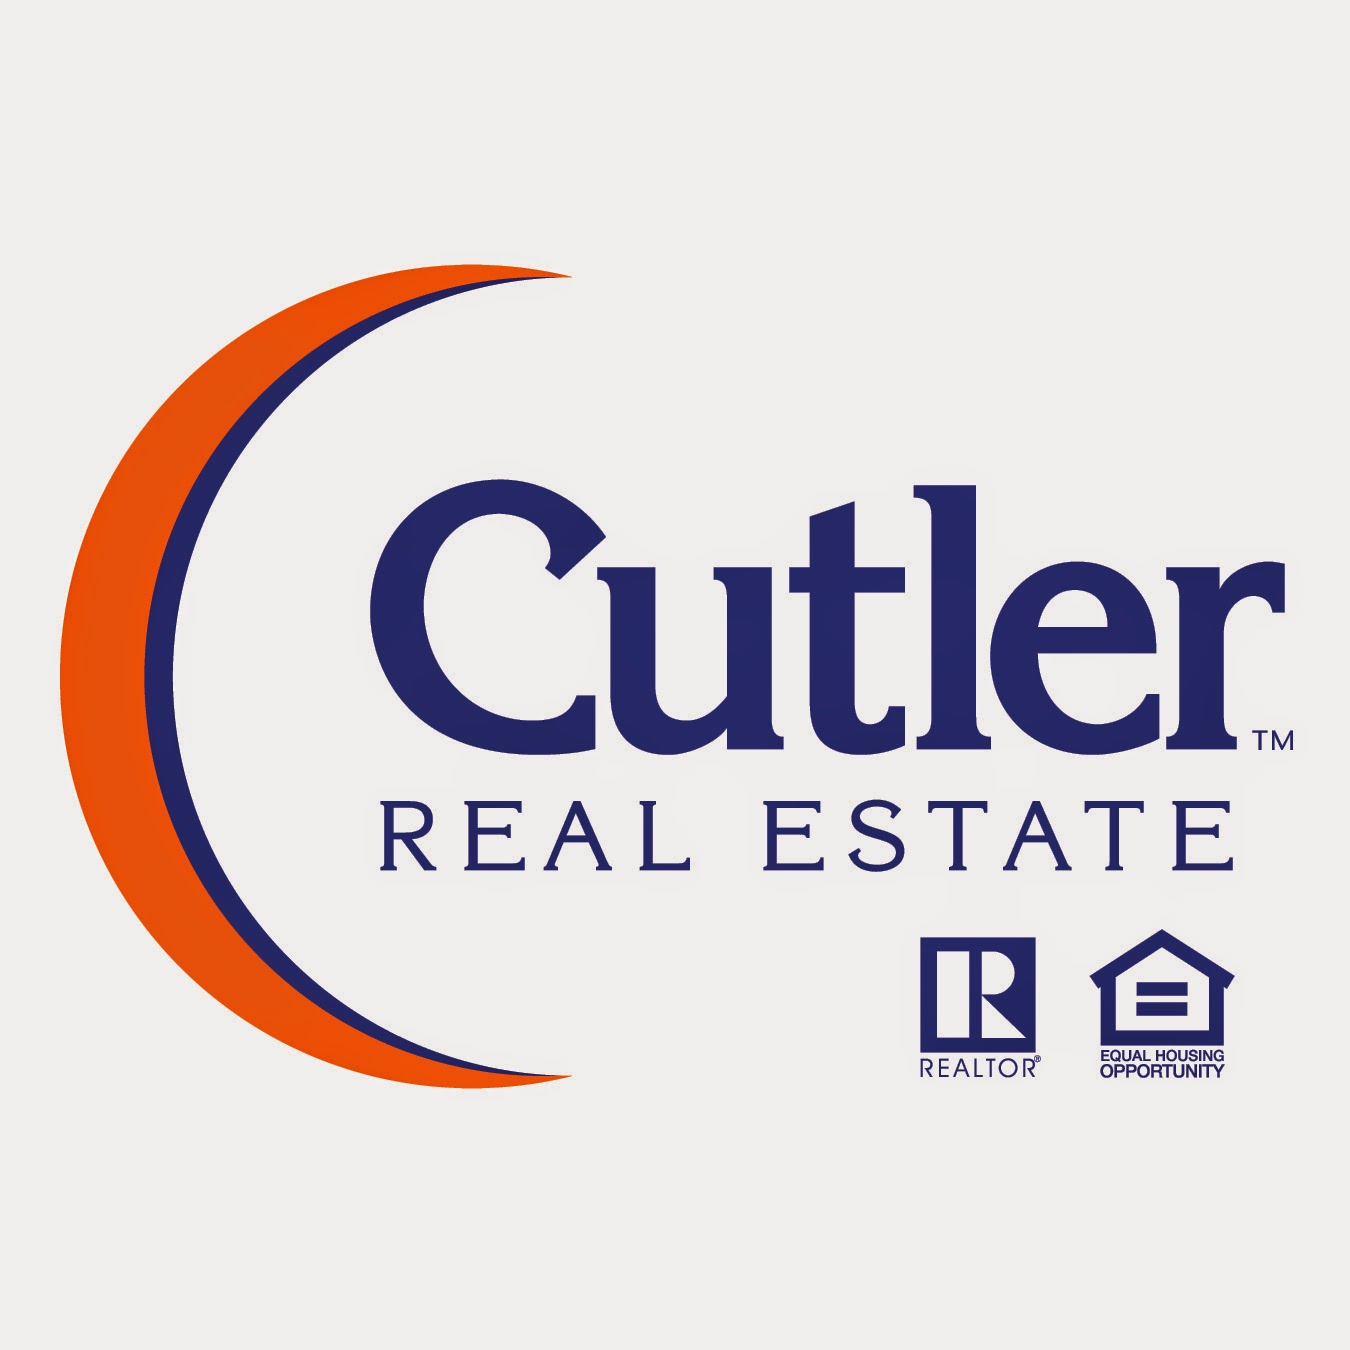 Cutler Real Estate - New Albany, OH 43054 - (614)289-1170 | ShowMeLocal.com